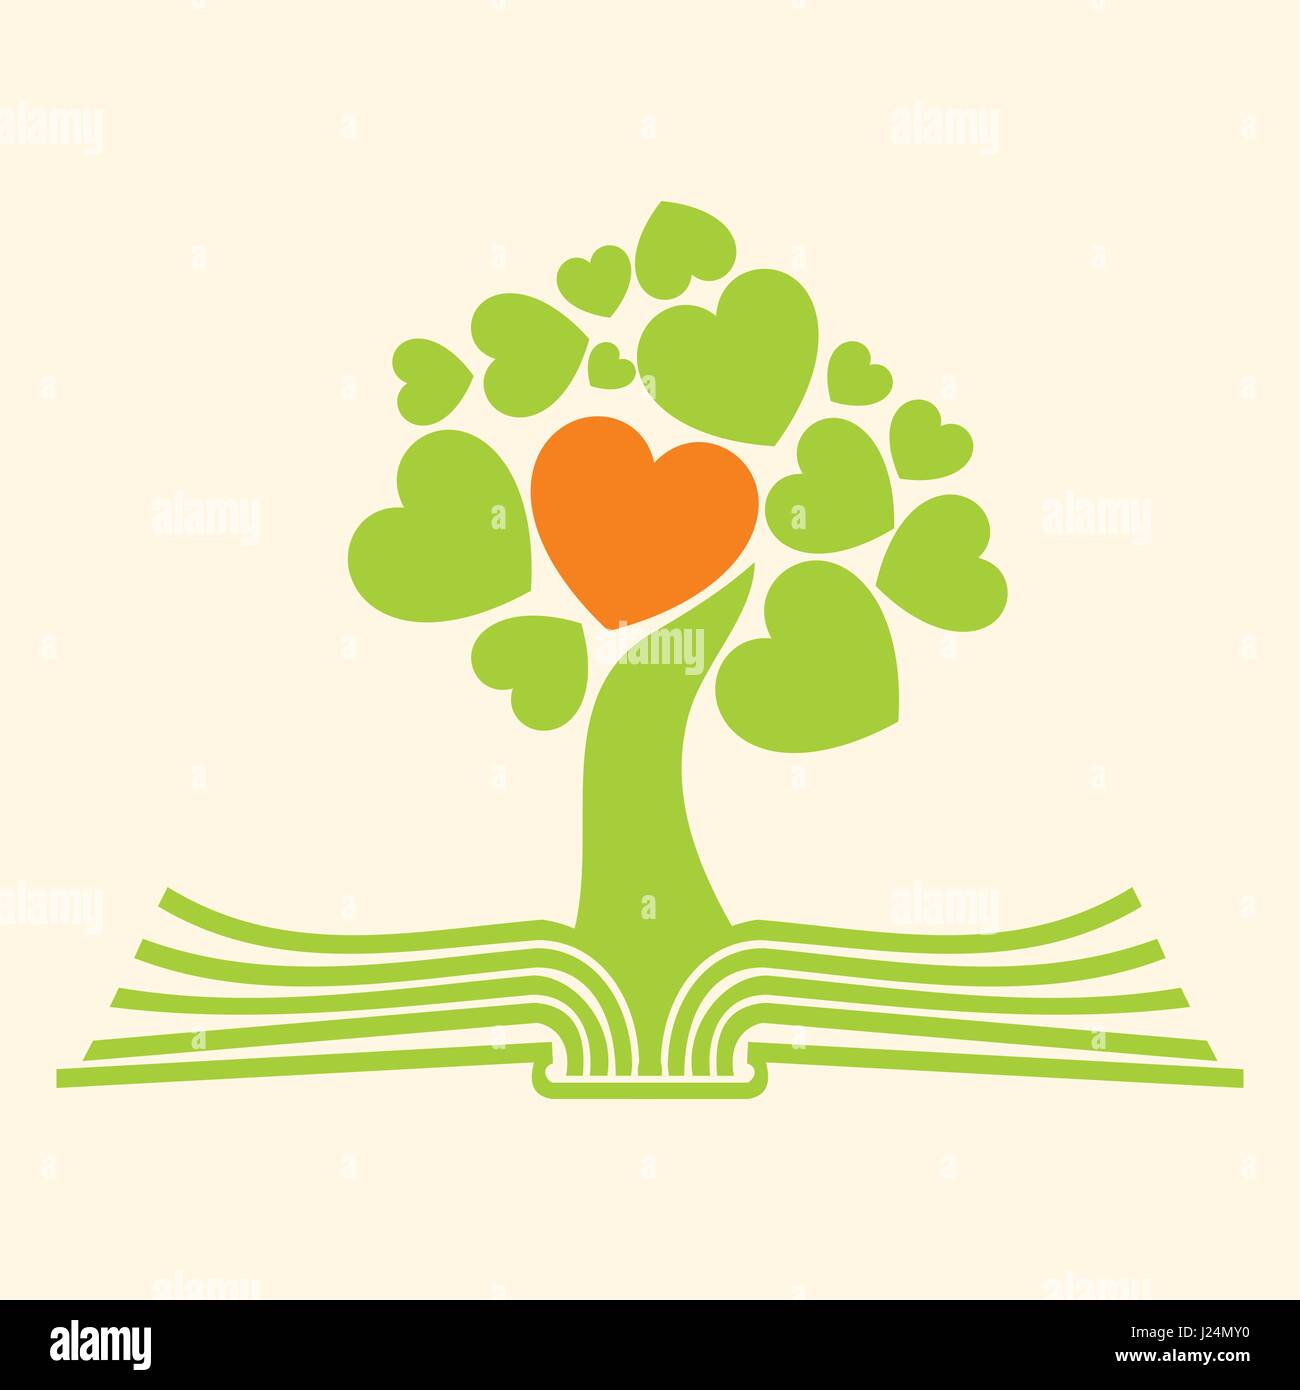 Church Logo Christian Symbols Tree Of Life And The Bible Stock